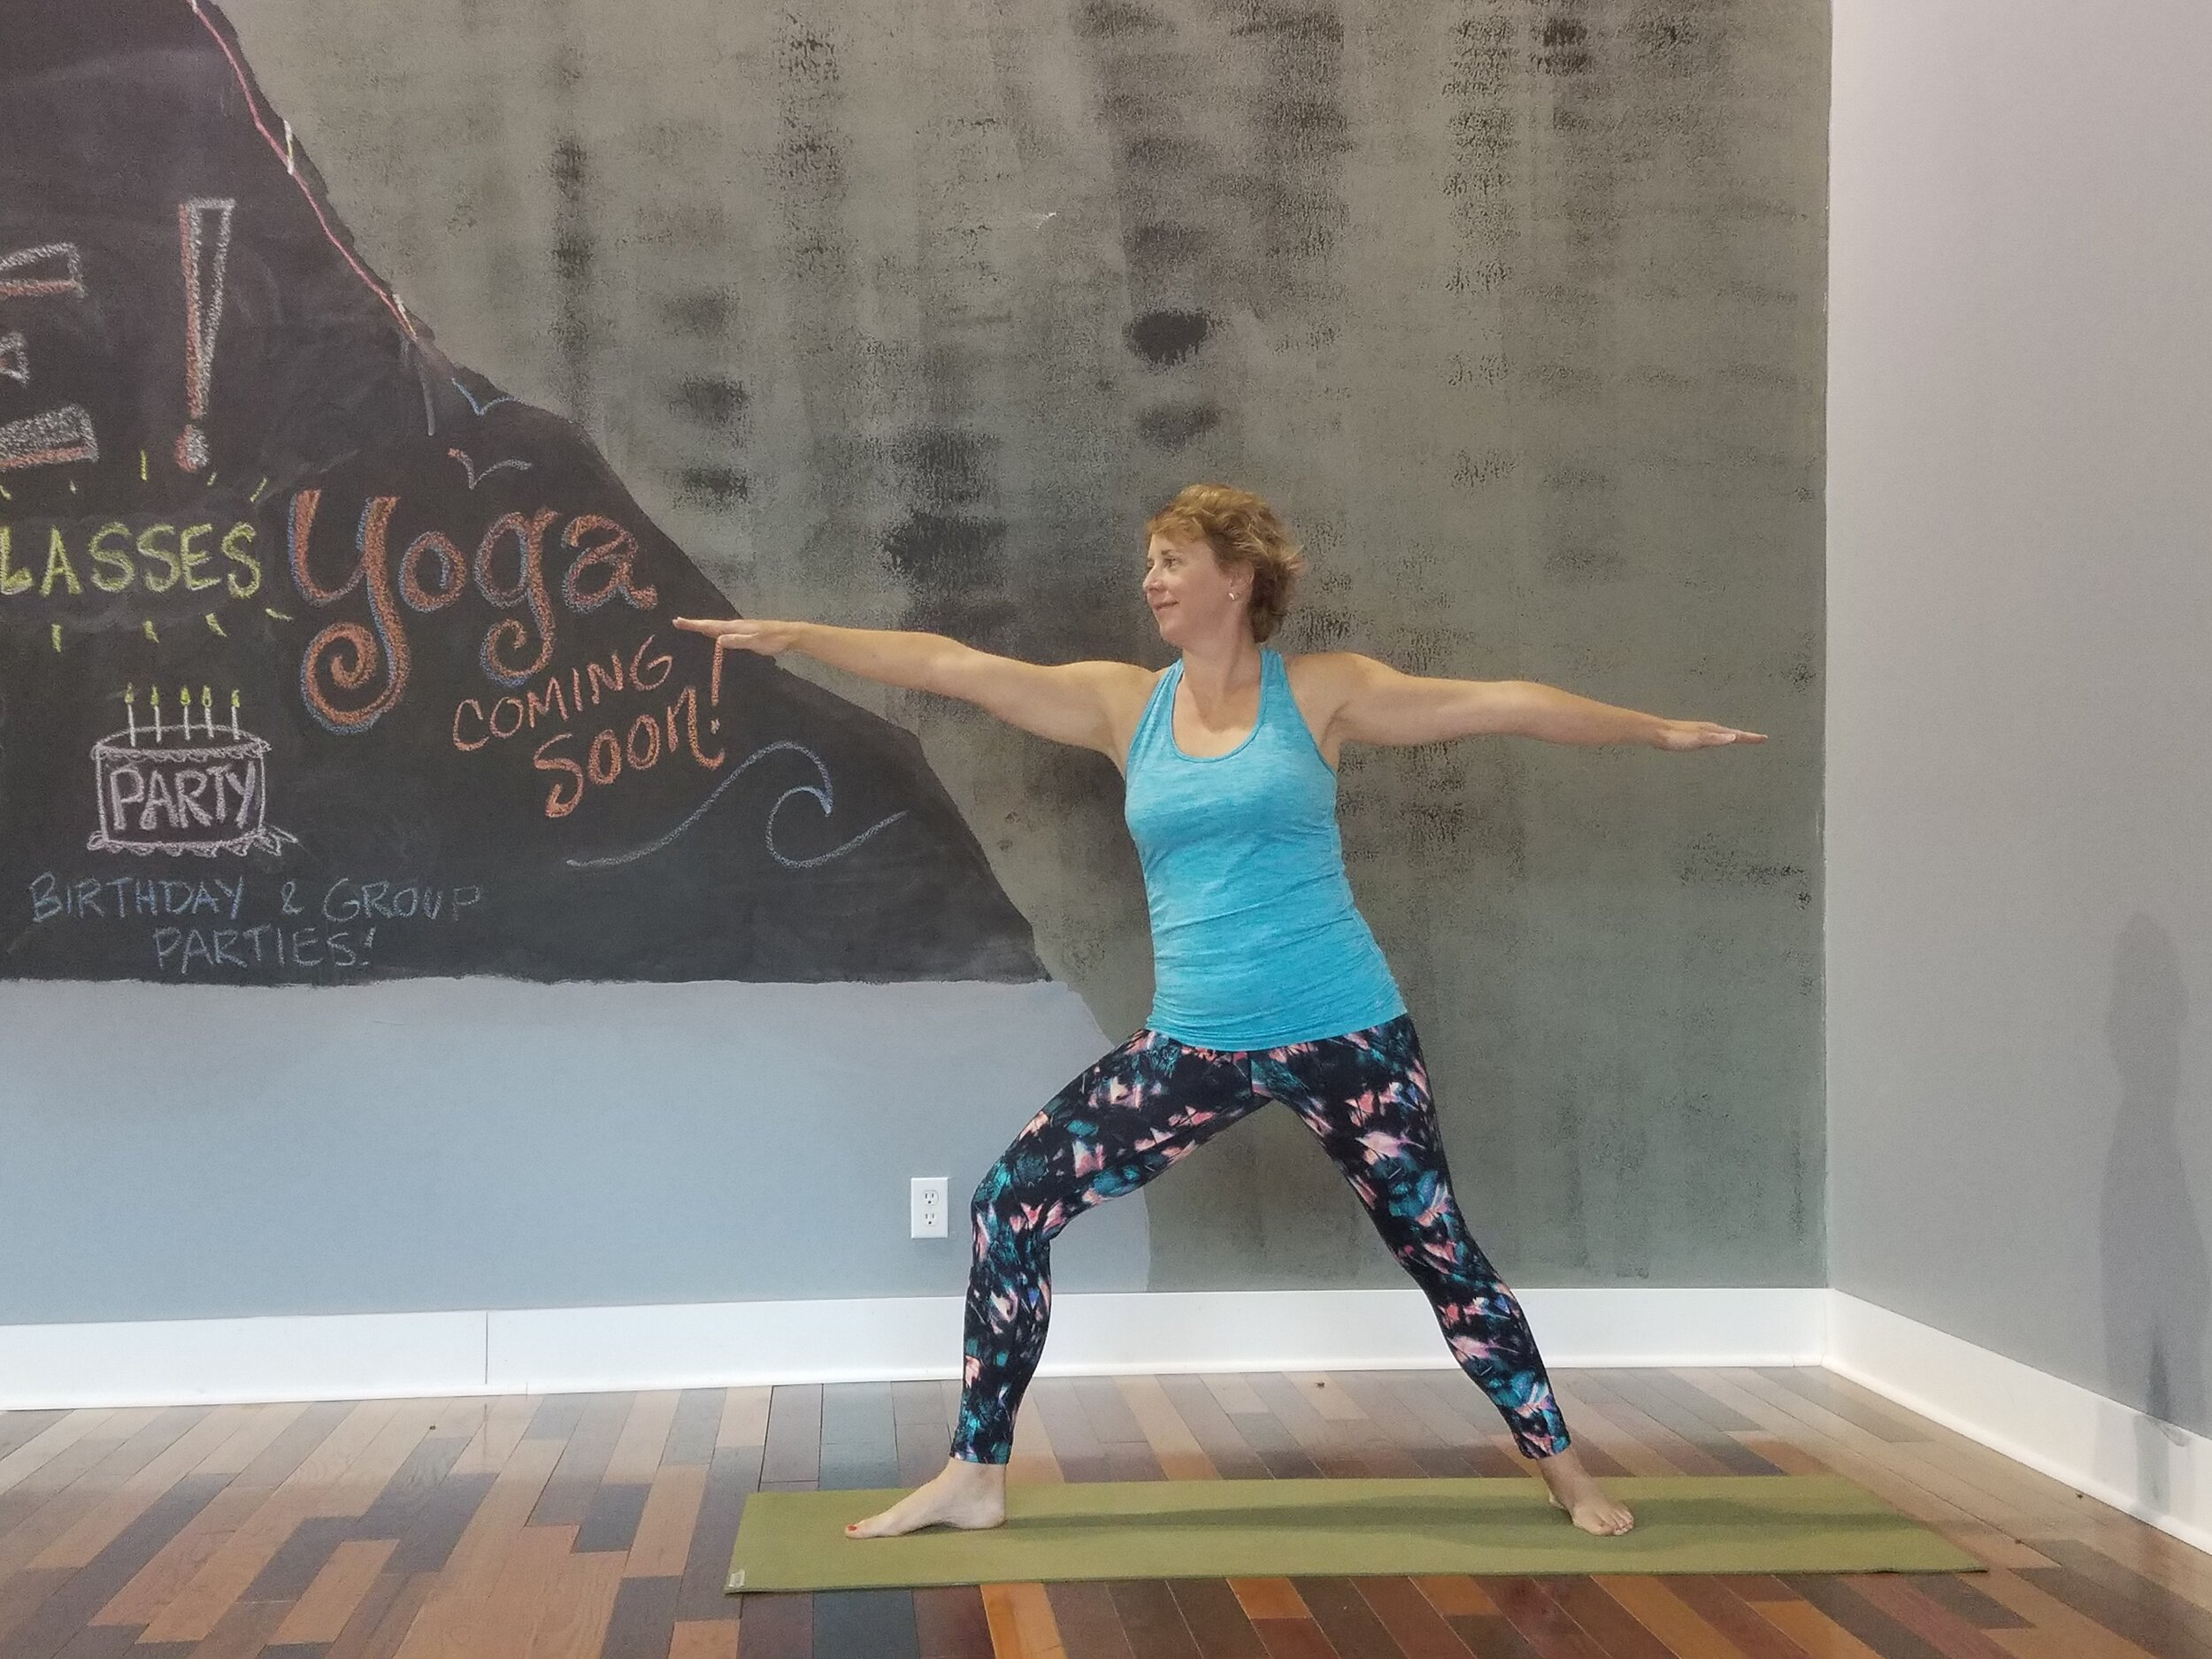 PAM IS OUR THURSDAY EVENING INSTRUCTOR. HER ALL LEVELS CLASS MEETS YOU WHERE YOU ARE IN YOUR PRACTICE, COME CHECK IT OUT AT 6PM ON THRUSDAYS!